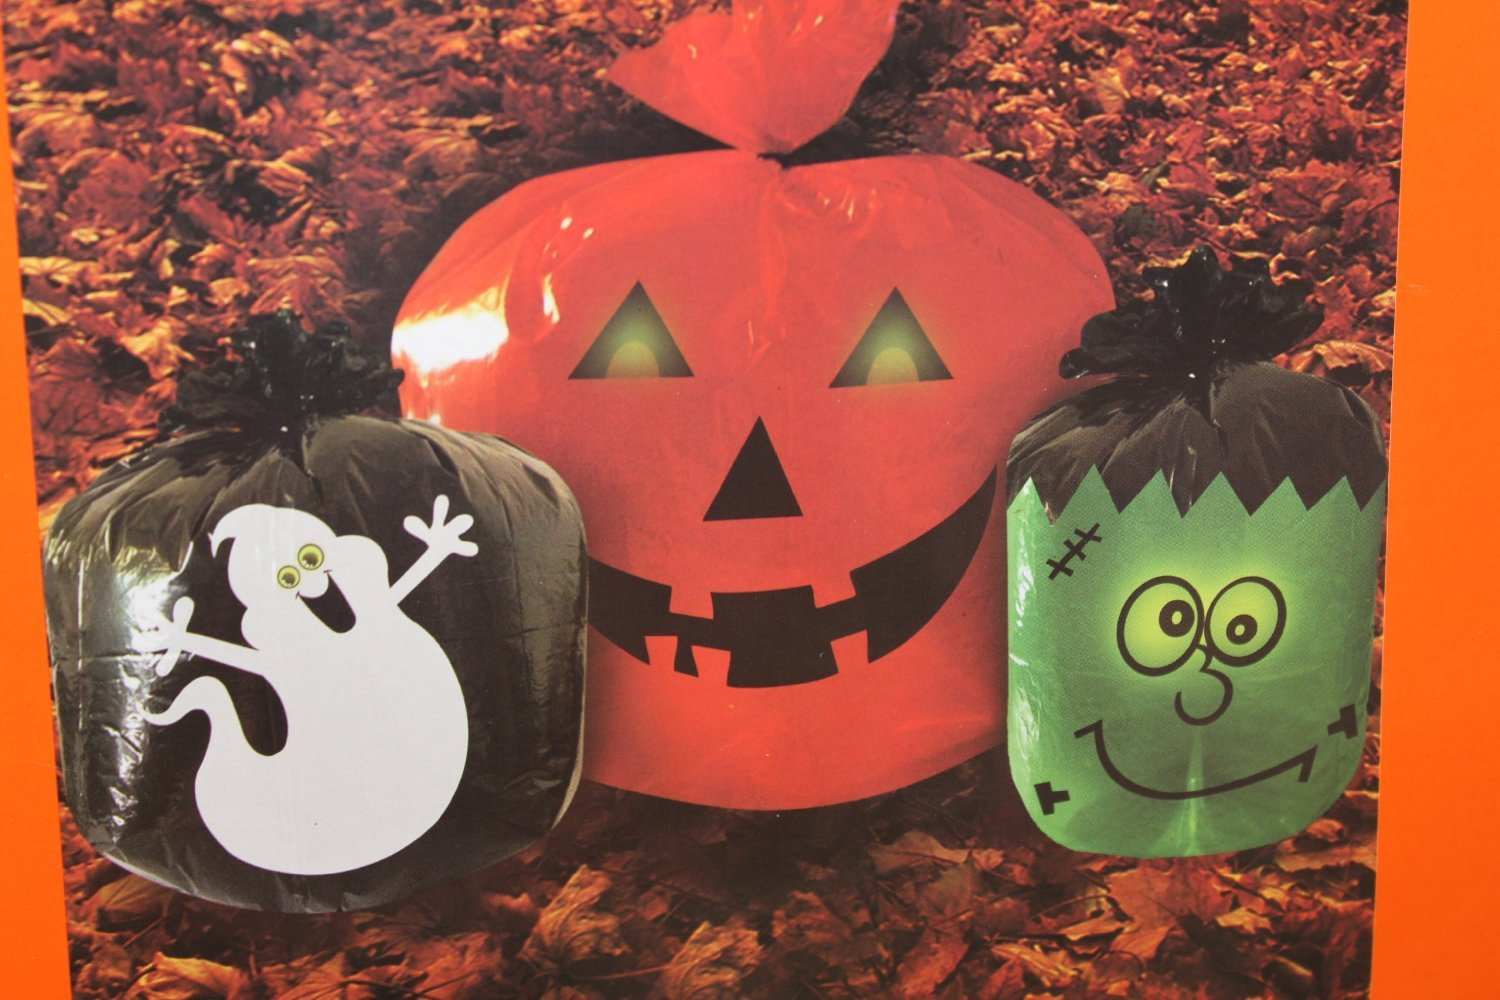 Halloween Glow in the Dark Lawn Bags - Pumpkin/ghost/frankinstein by Glow In The Dark